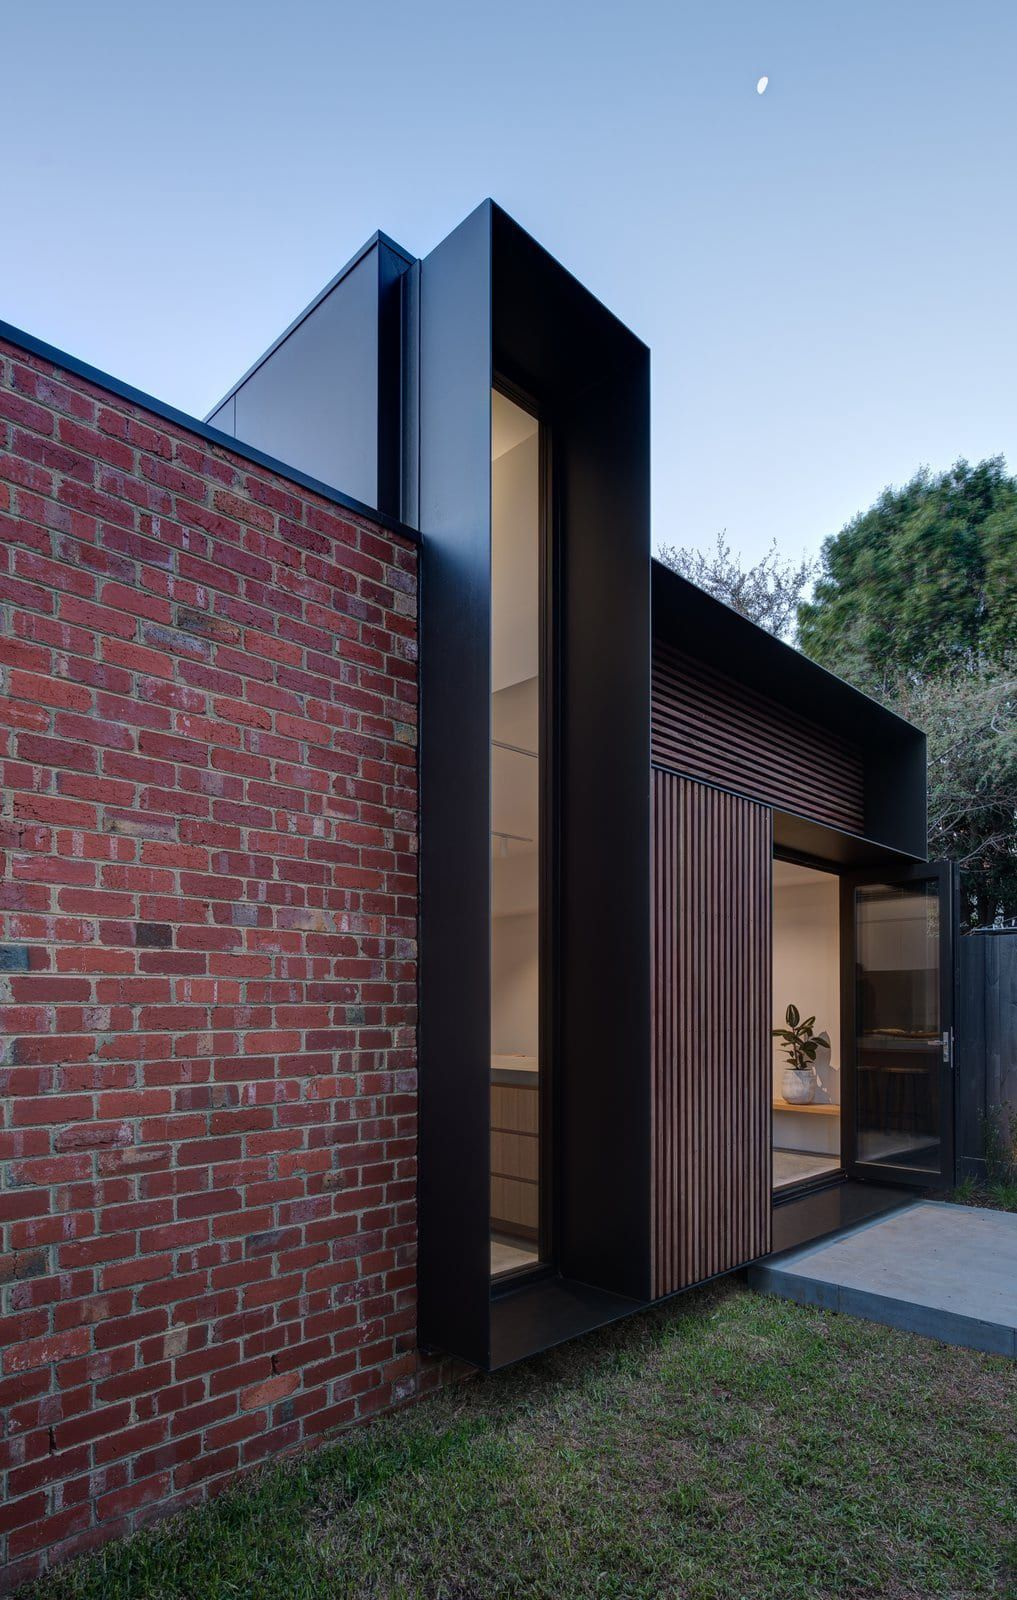 Black Metal And Face Brick A Match Made In Heaven Bardage Maison Maison Moderne Briques Facade Maison